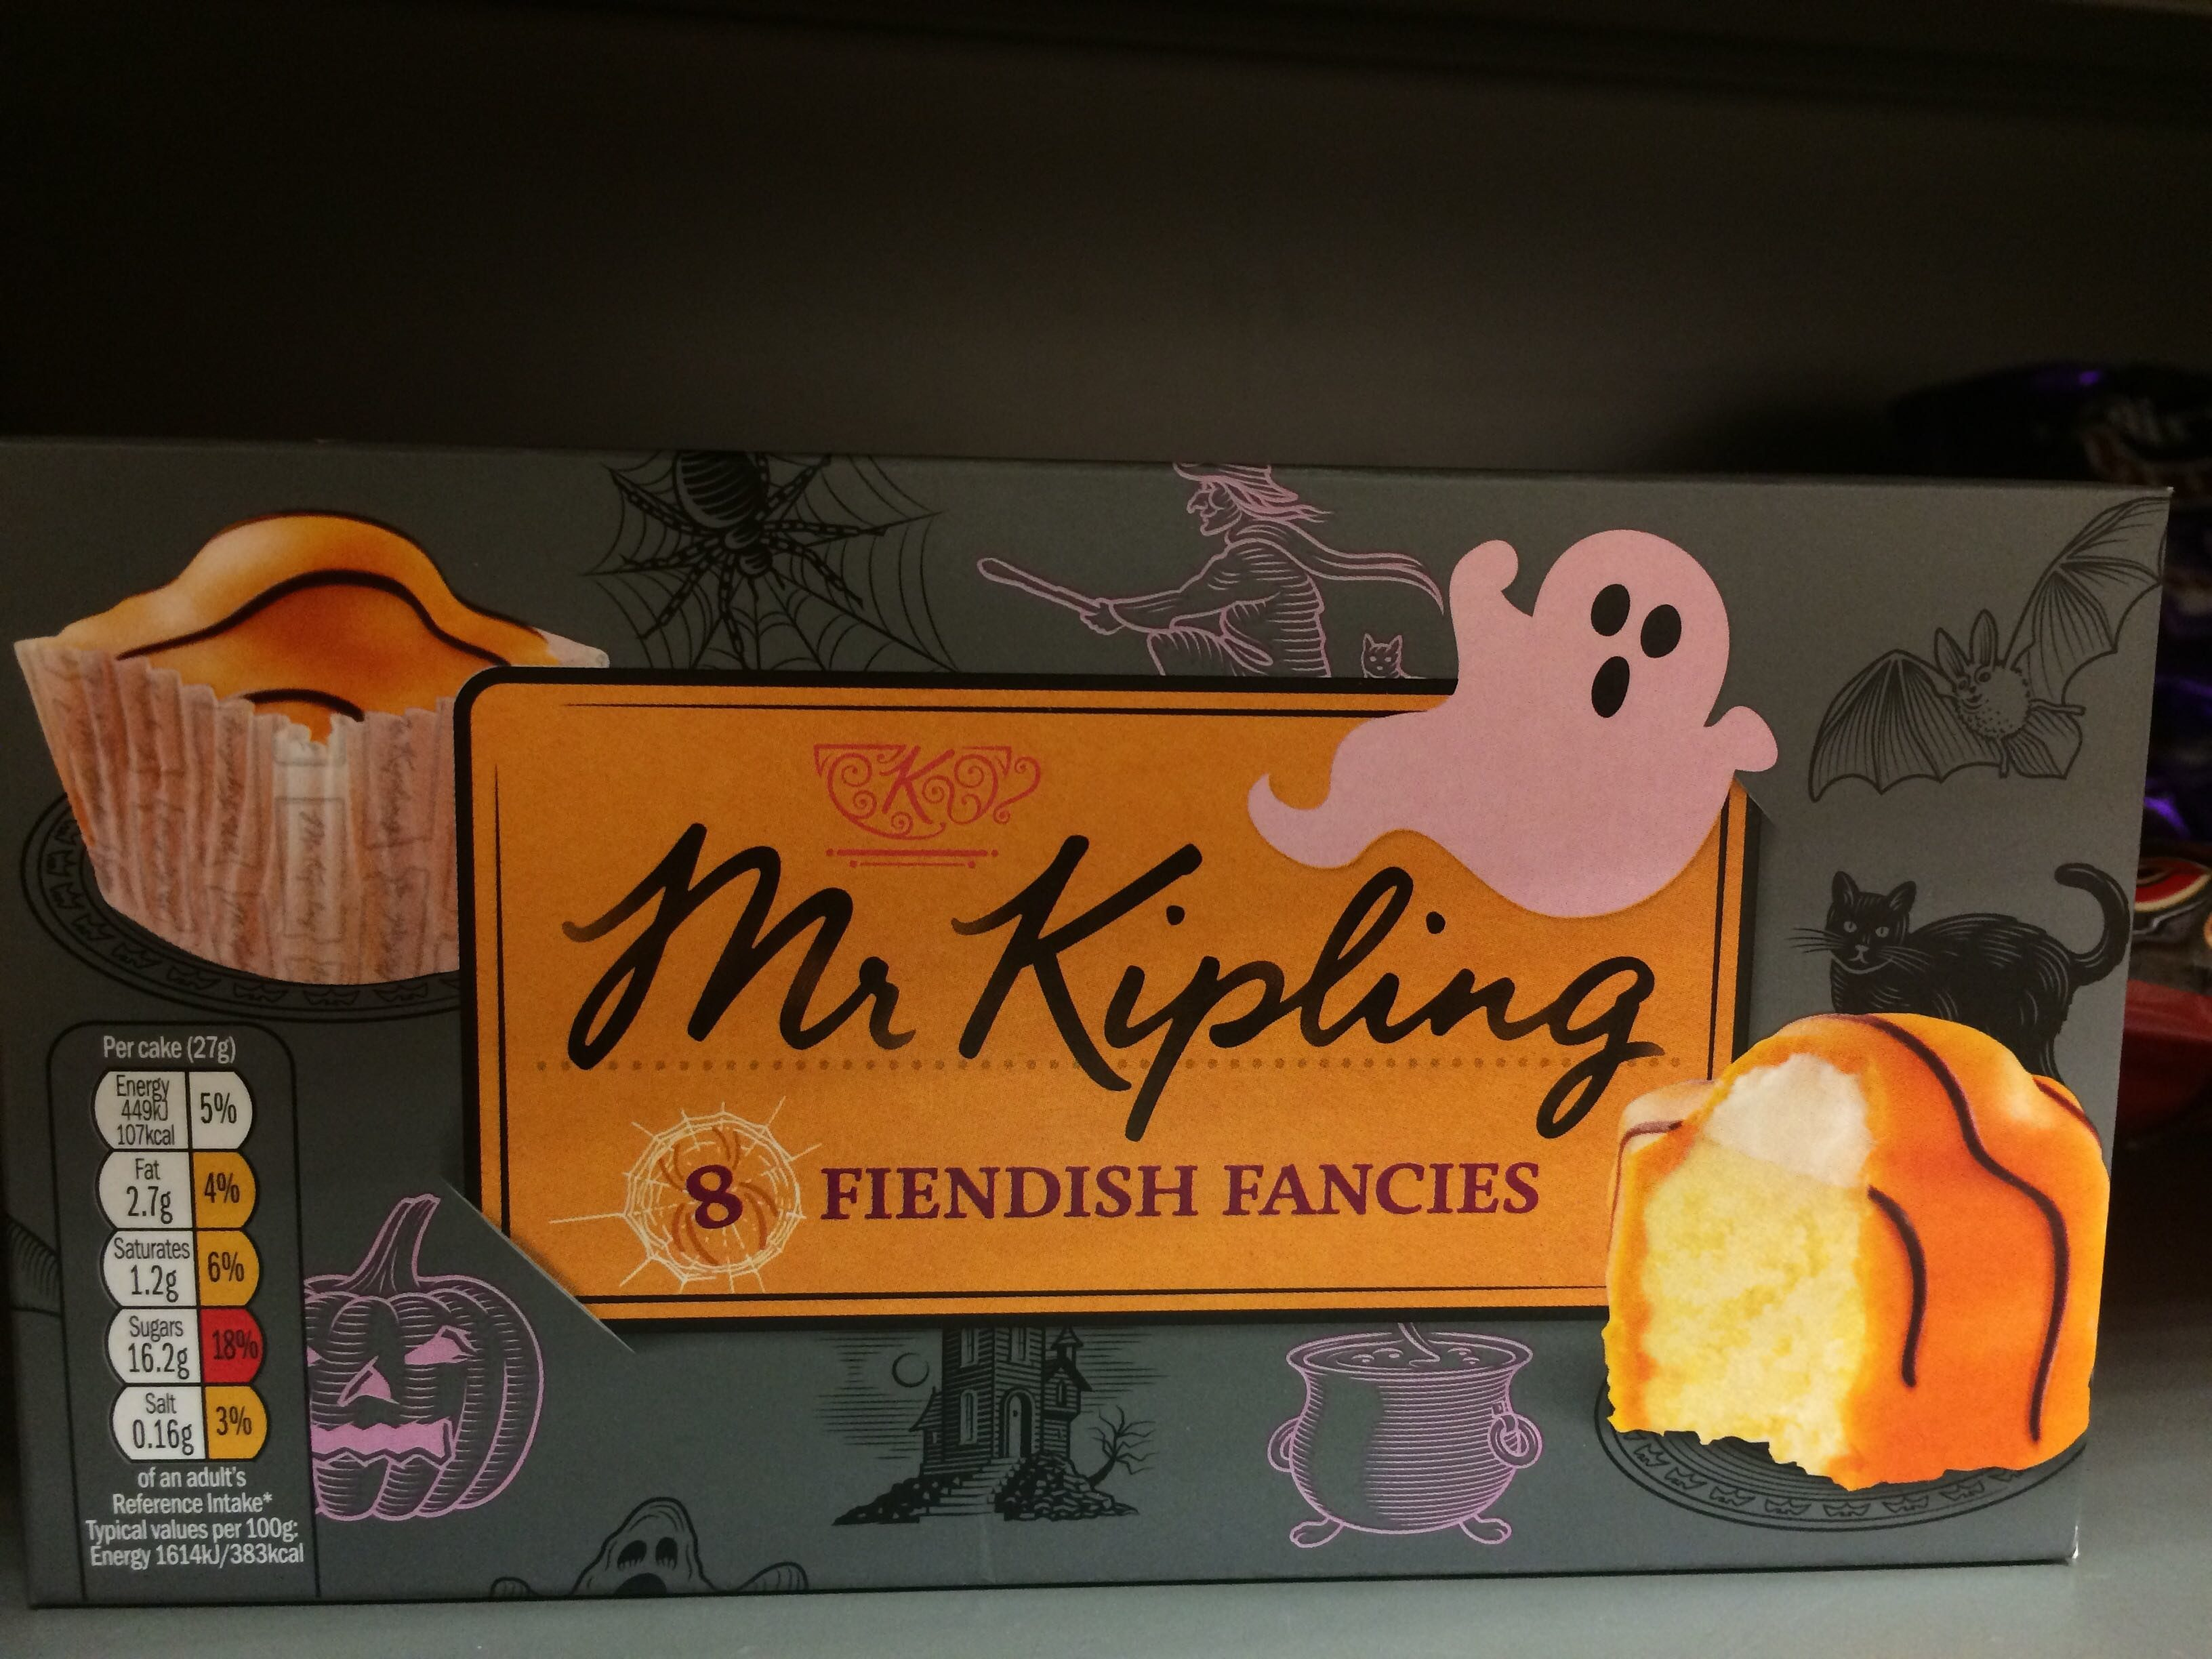 8 fiendish fancies - Produit - en